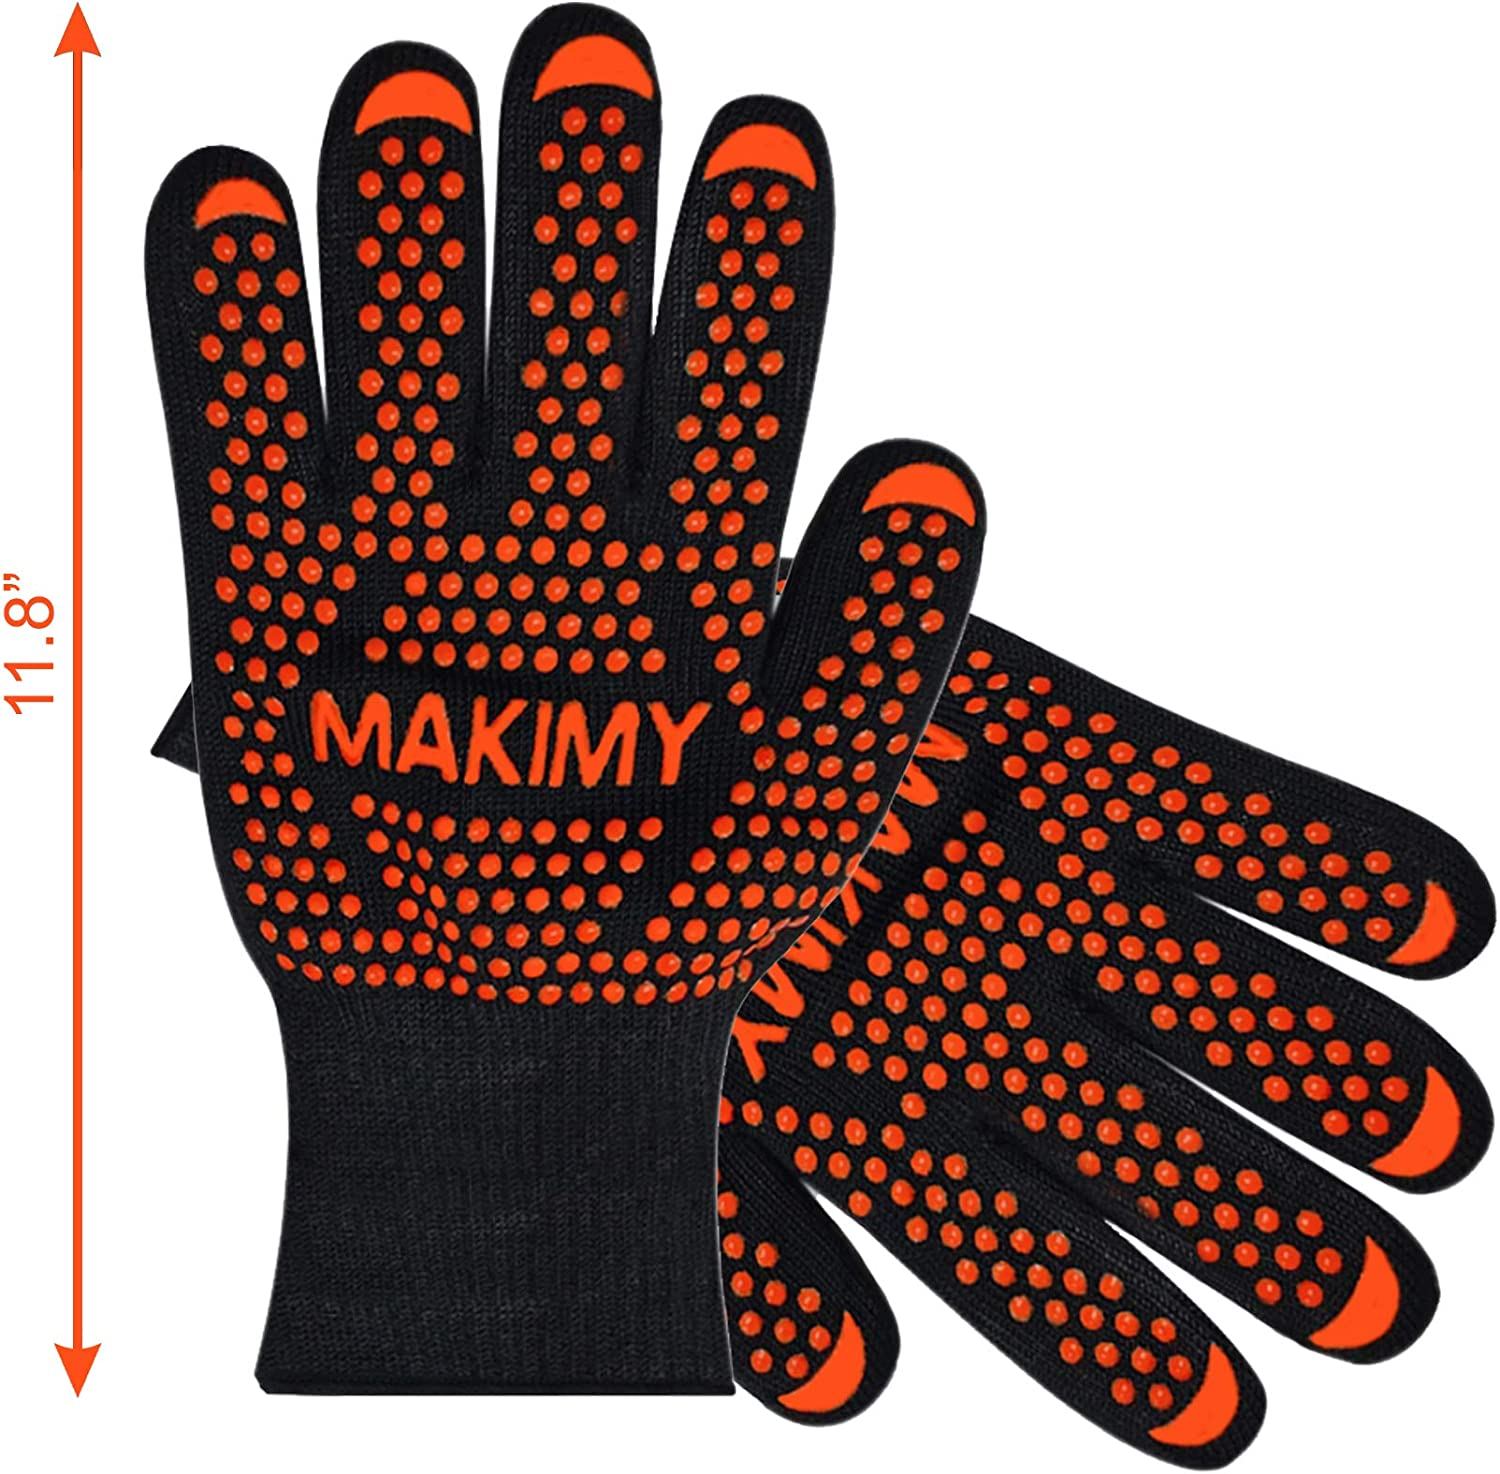 BBQ Gloves for Baking & Grilling – Heat Protection for Barbecue, Grill, Oven, Cooking, Smoking - Size Large